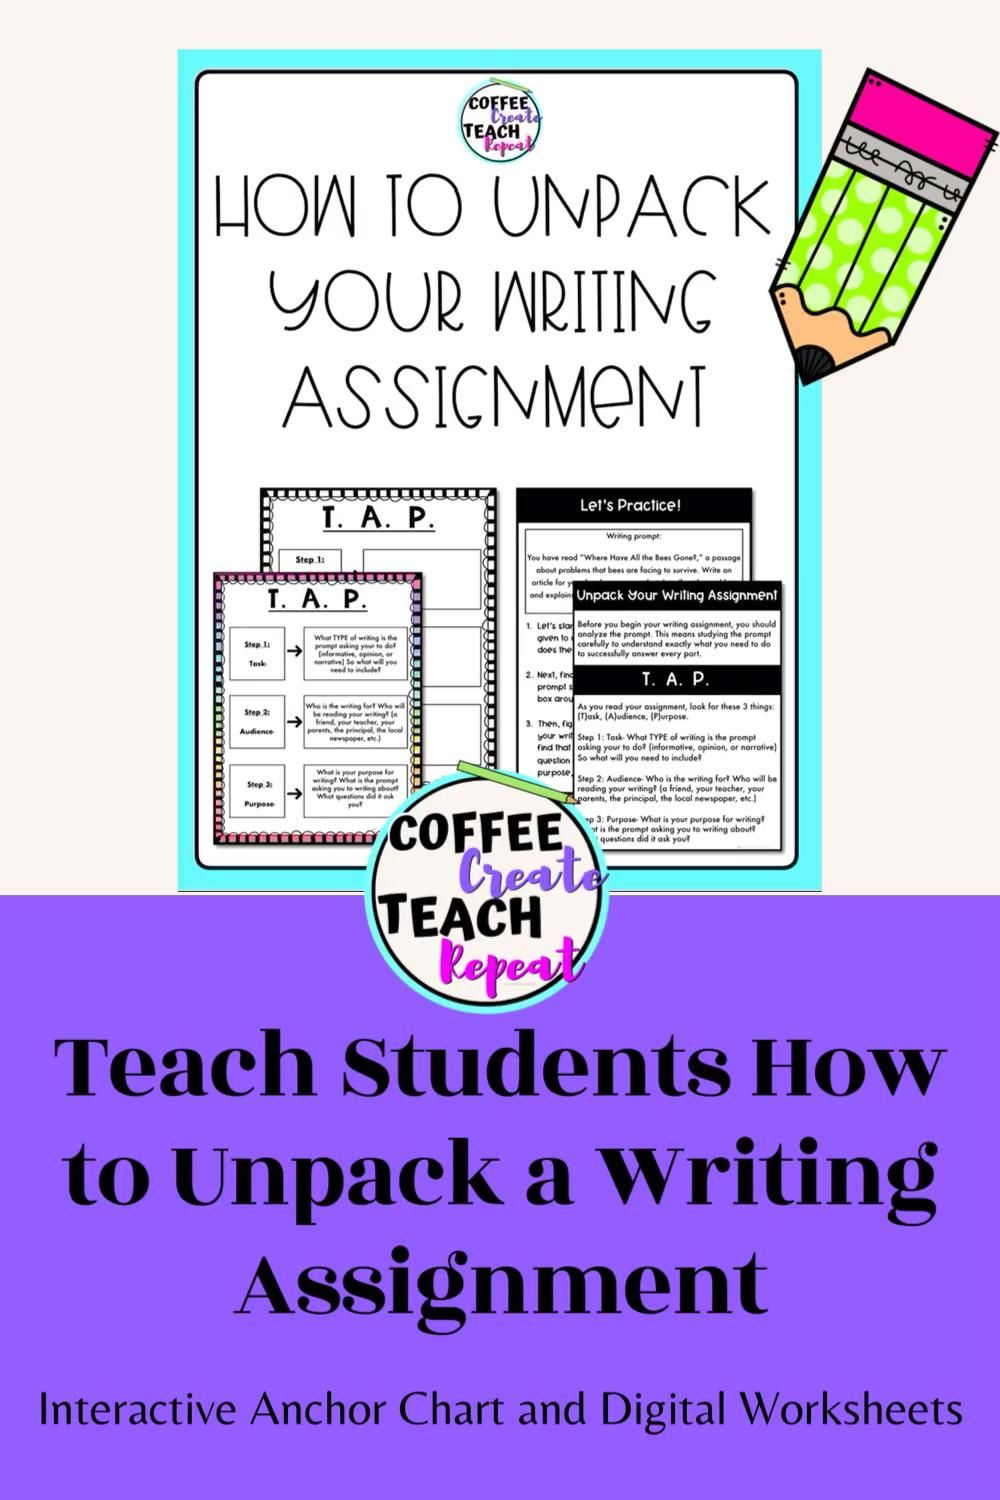 Unpacking A Writing Assignment Interactive Anchor Chart T A P Strategy Video Informational Writing Writing Assignments Interactive Anchor Charts [ 1500 x 1000 Pixel ]